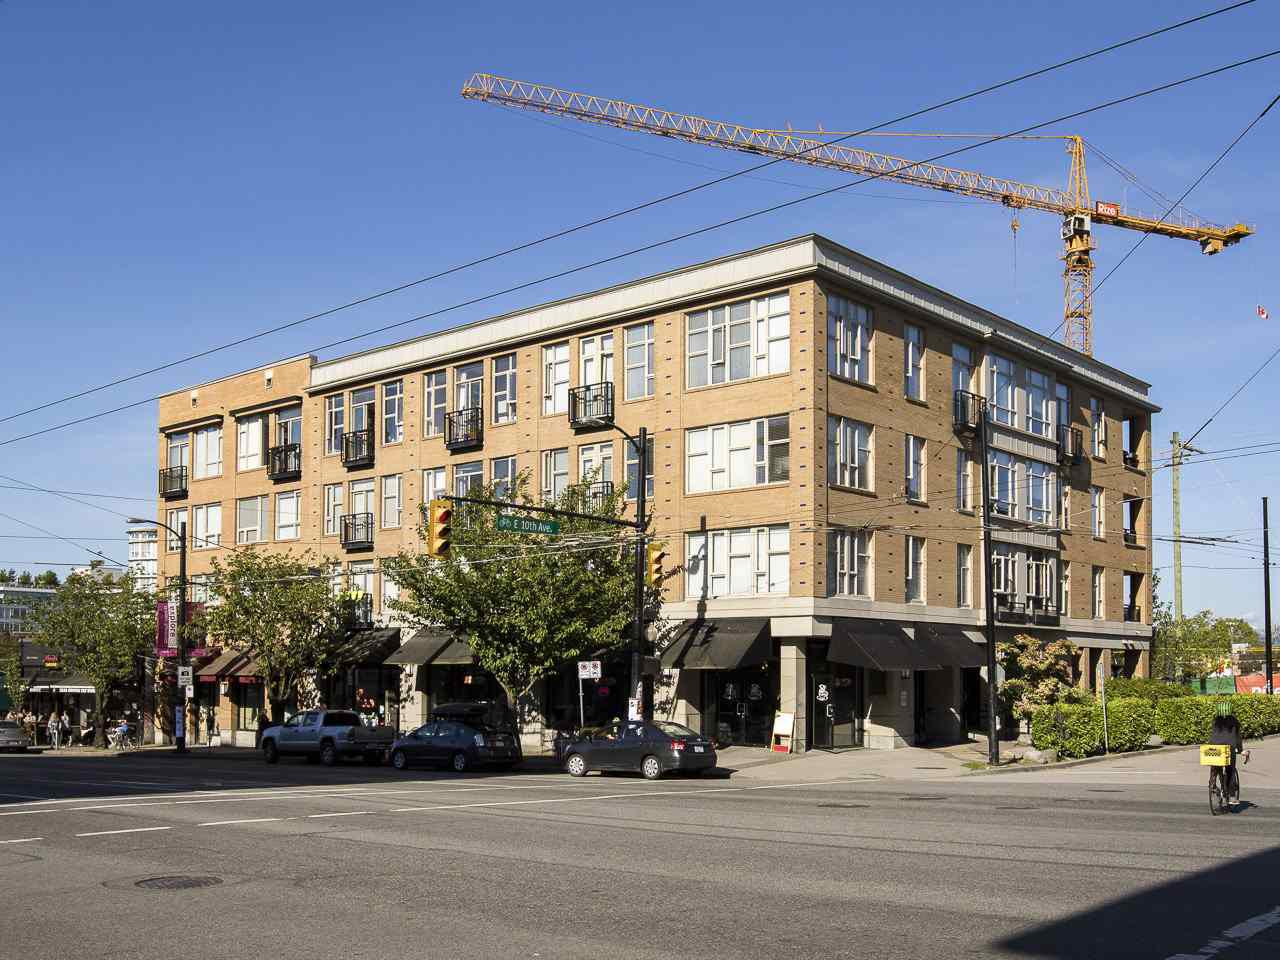 """Main Photo: 405 205 E 10TH Avenue in Vancouver: Mount Pleasant VE Condo for sale in """"THE HUB"""" (Vancouver East)  : MLS®# R2064198"""